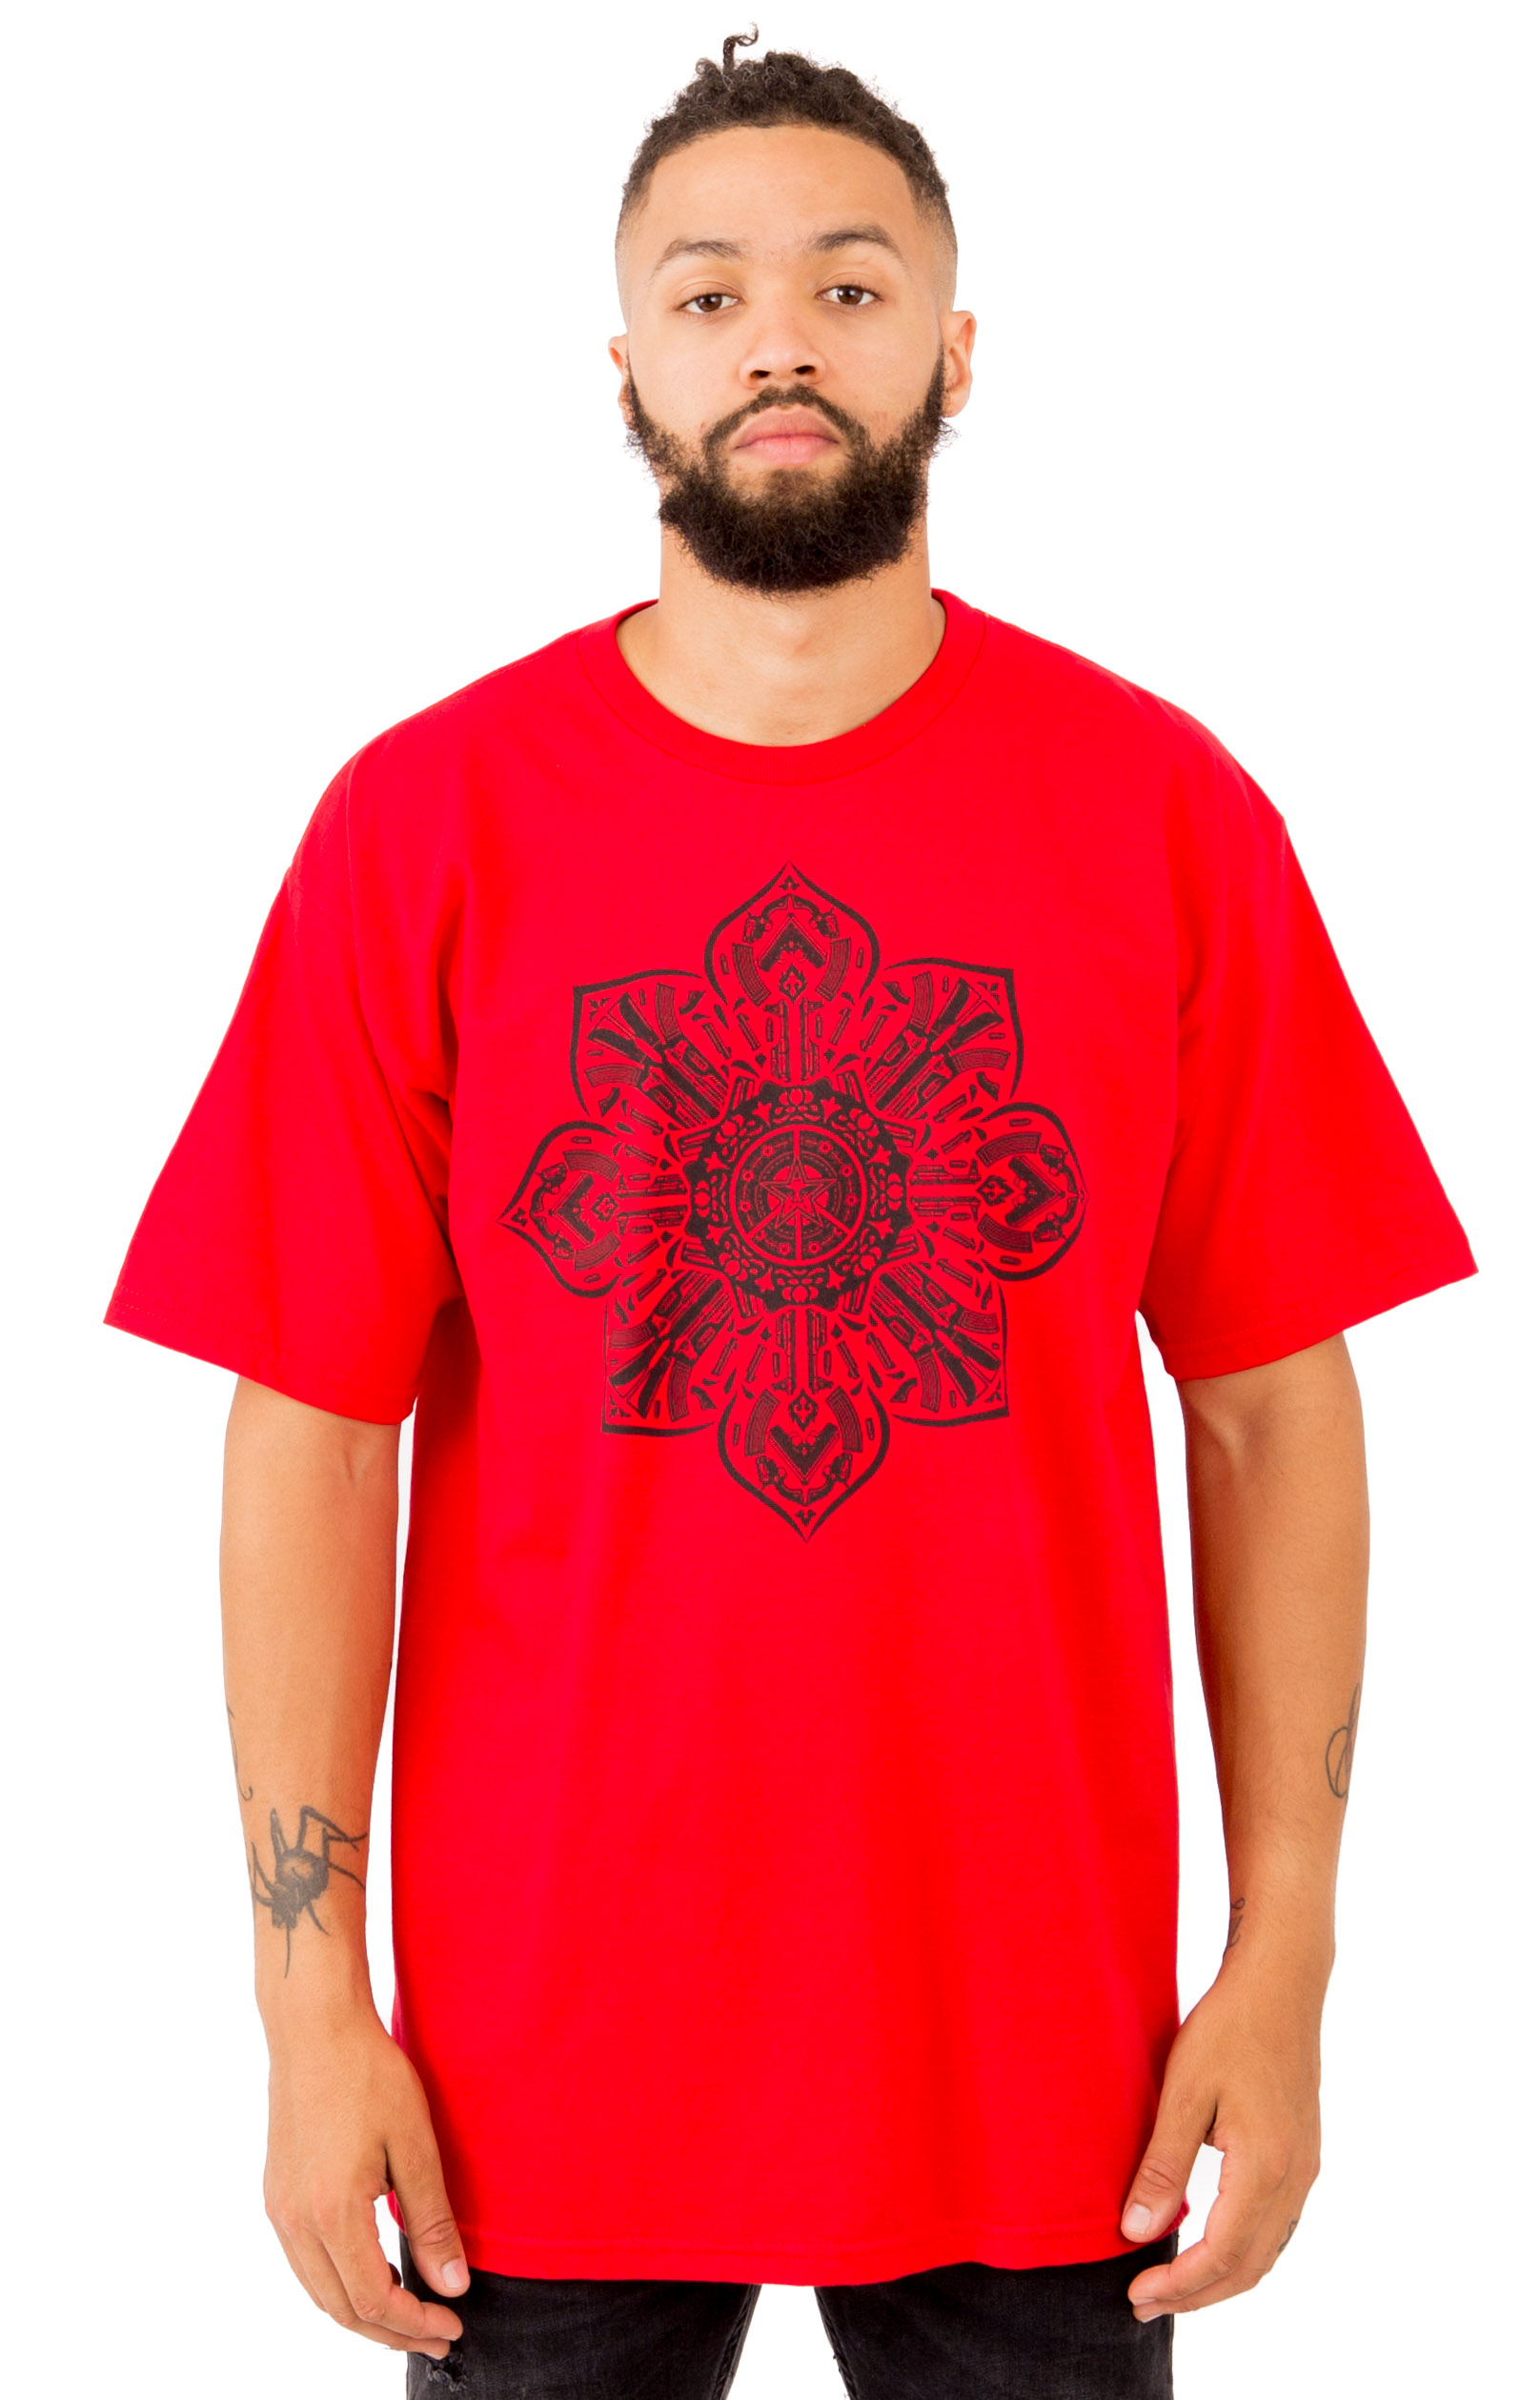 Gun Mandala T-Shirt - Red